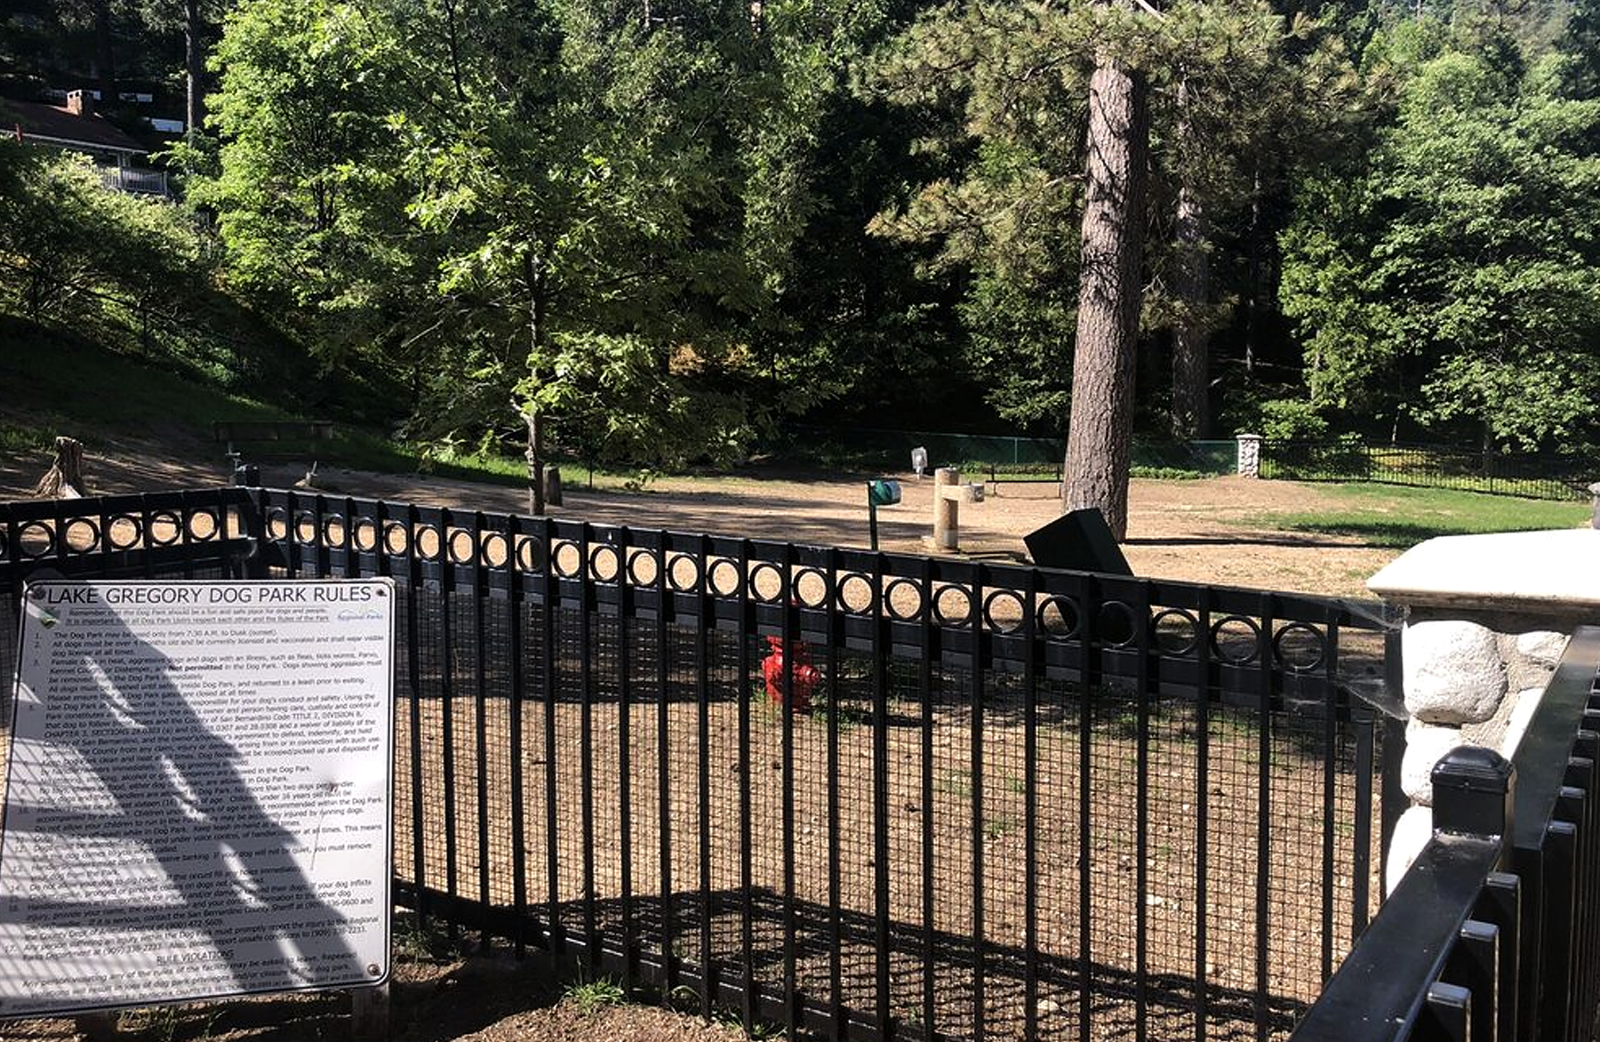 A photo of an empty dog park with metal fence.